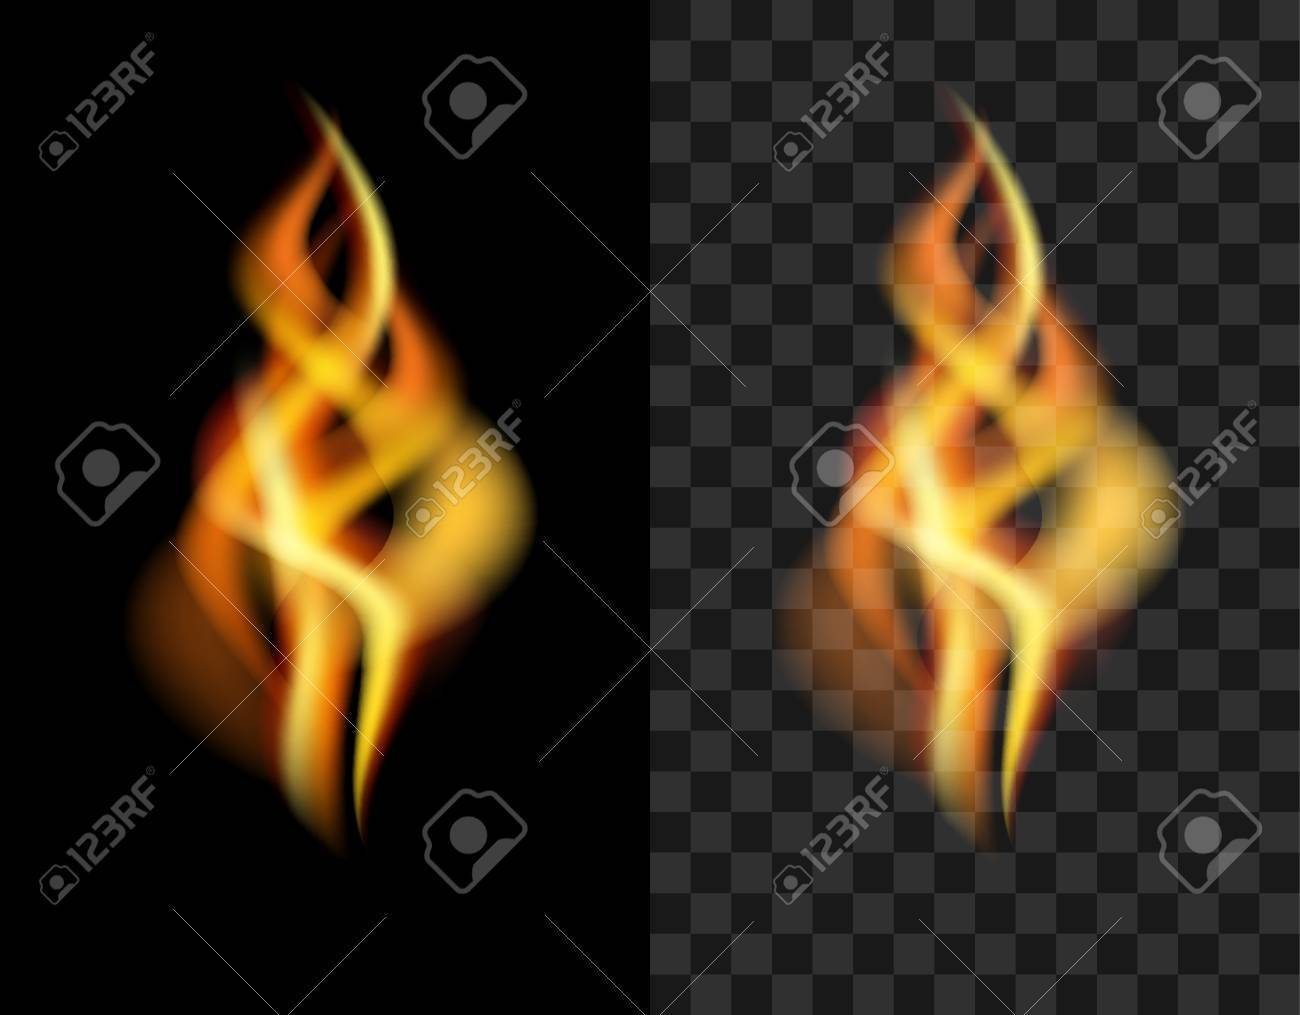 fire transparent translucent flame torch stock photo picture and